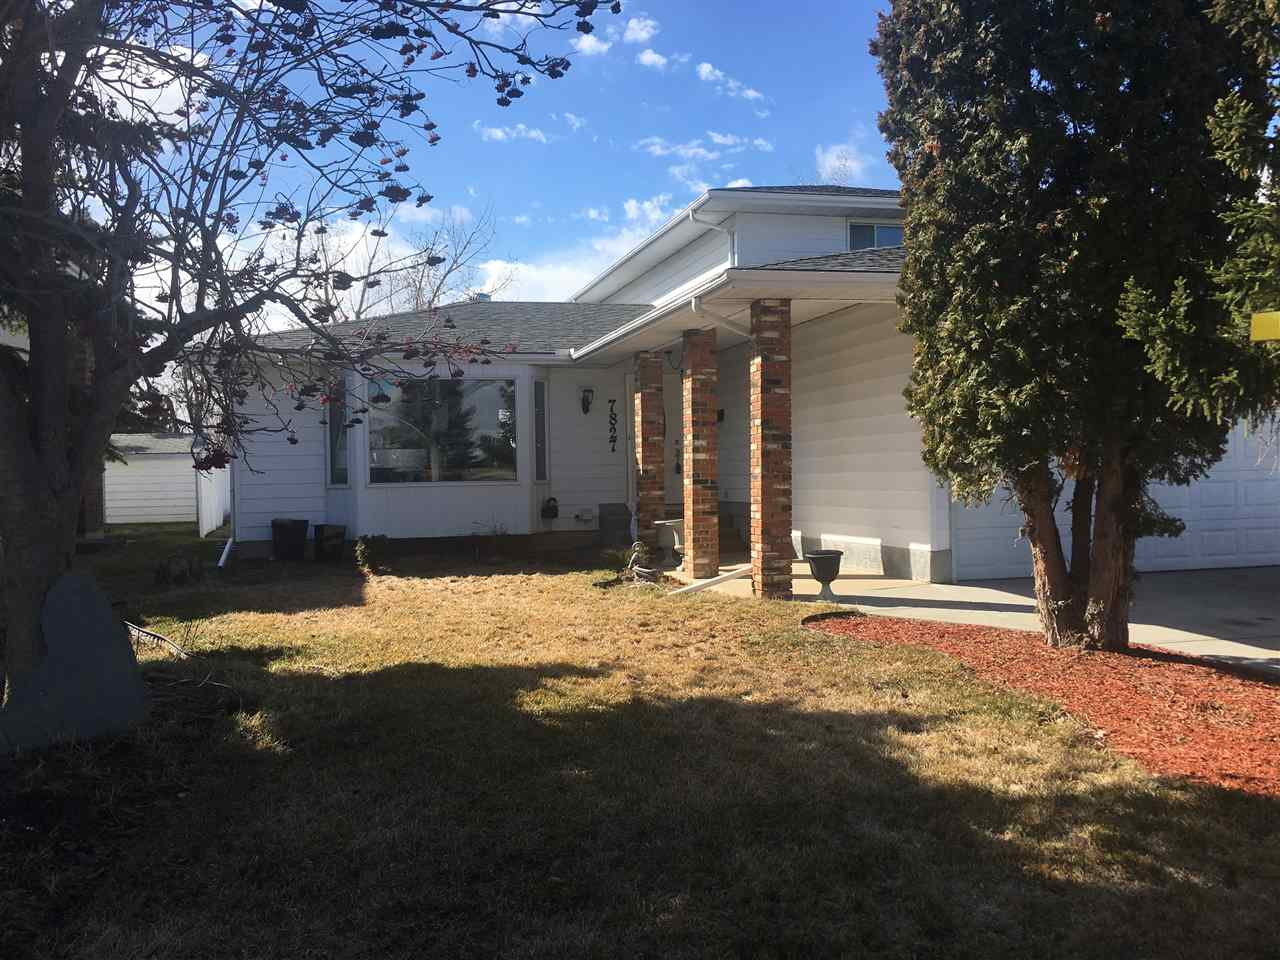 This two storey offers lots of space.  As you walk in you have a large front entrance and large living room.  The kitchen has tons of cabinets upgraded appliances and large pantry.  Just off the kitchen is a dining space, that can seat up to 8 people.  Just off the kitchen you have a family room with wood burning fireplace.  The main floor also offers a good size den or office.  Upstairs offers two bedrooms plus a master bedroom with his and her closets and 2pc bathroom and a main 4pc bathroom.  The basement offers two more bedrooms, 3pc bathroom, tons of storage and laundry room.  This property offers a large backyard with deck.  Upgrades include newer hot water tank, newer furnace and newer windows.